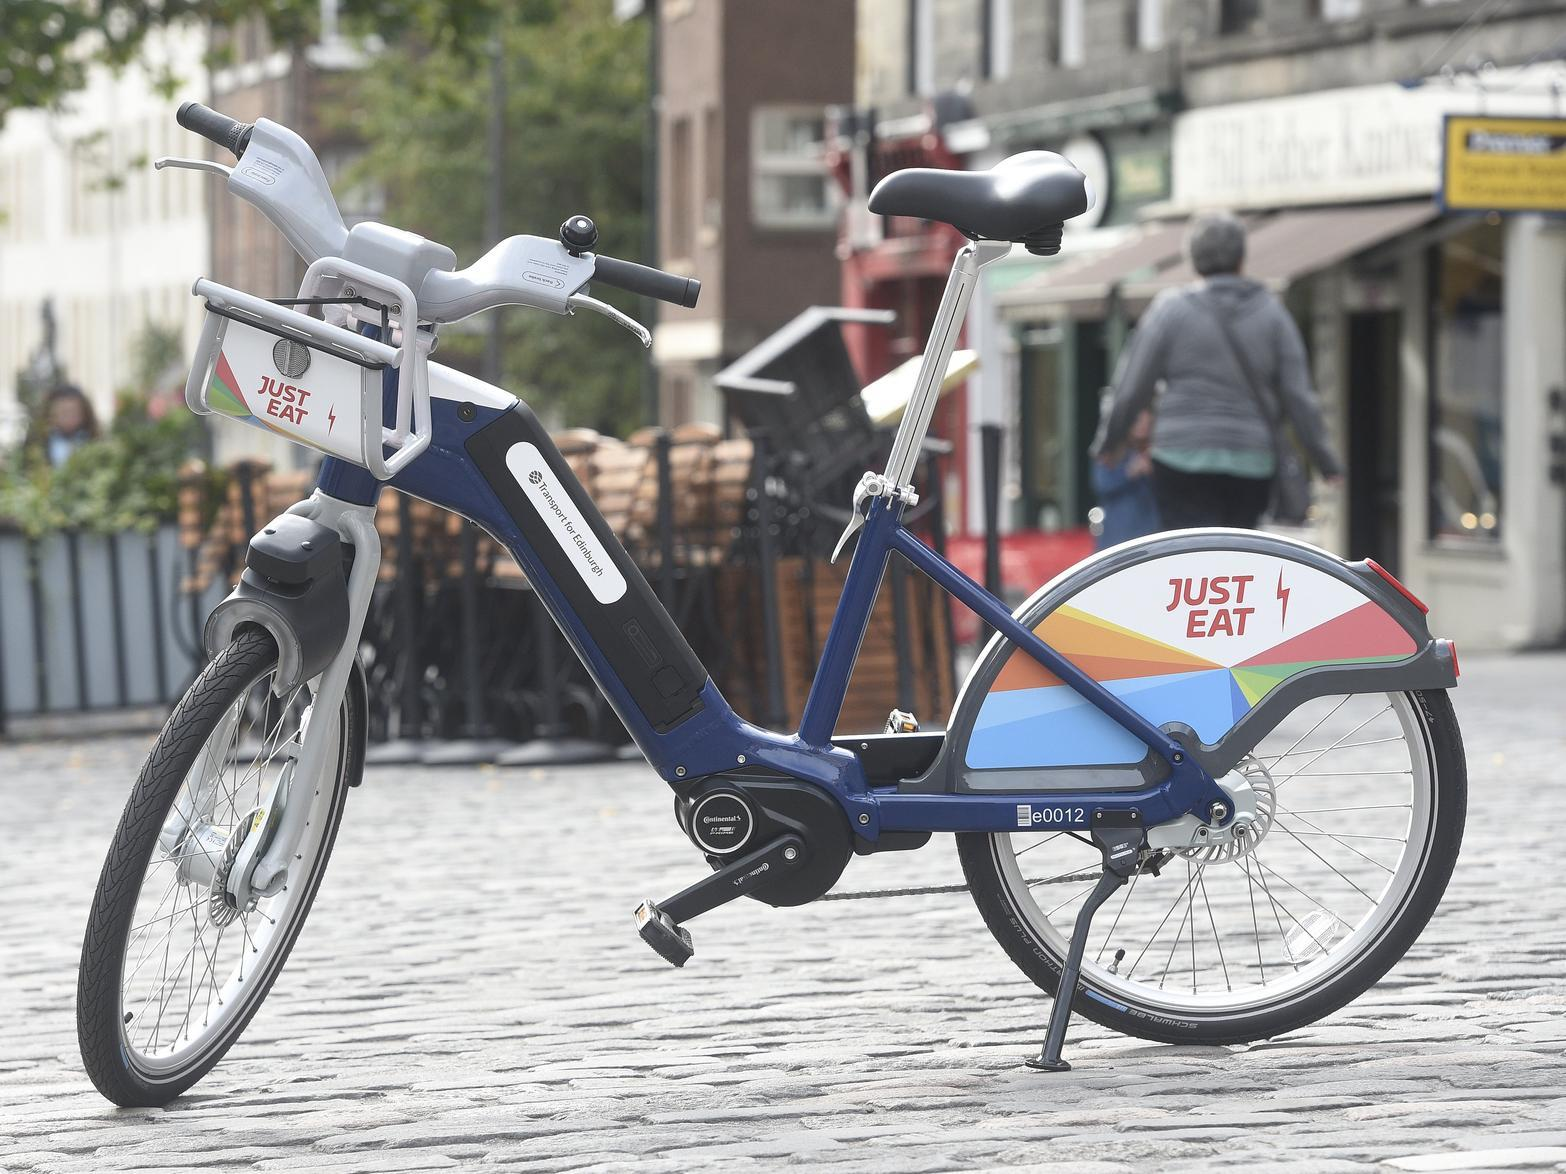 Edinburgh S Justeat Cycle Scheme To Add 42 New Hire Points Across